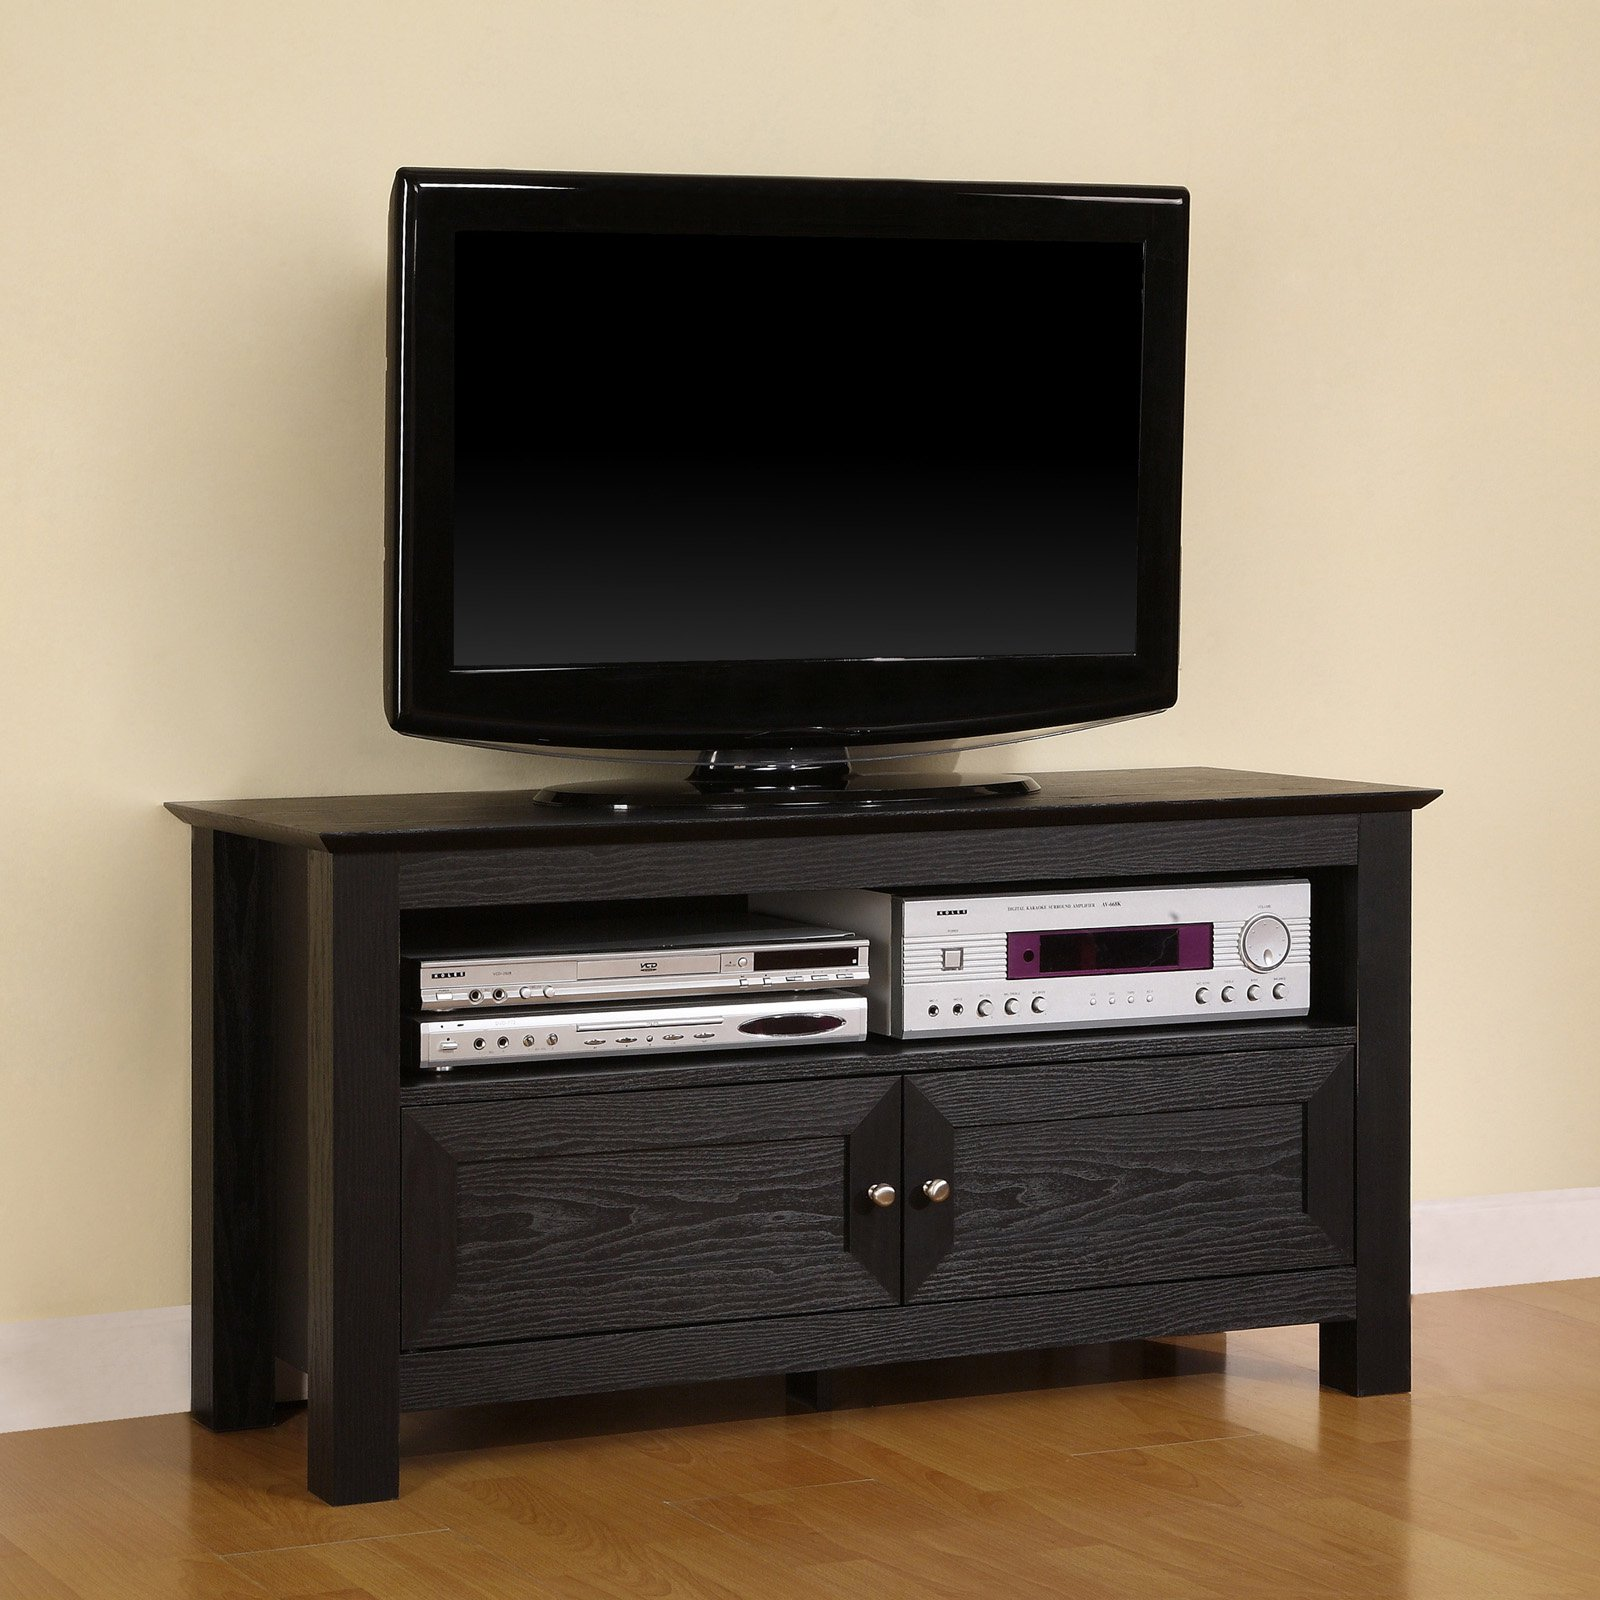 "Walker Edison Contemporary Black TV Stand for TVs up to 48"", Multiple Colors"